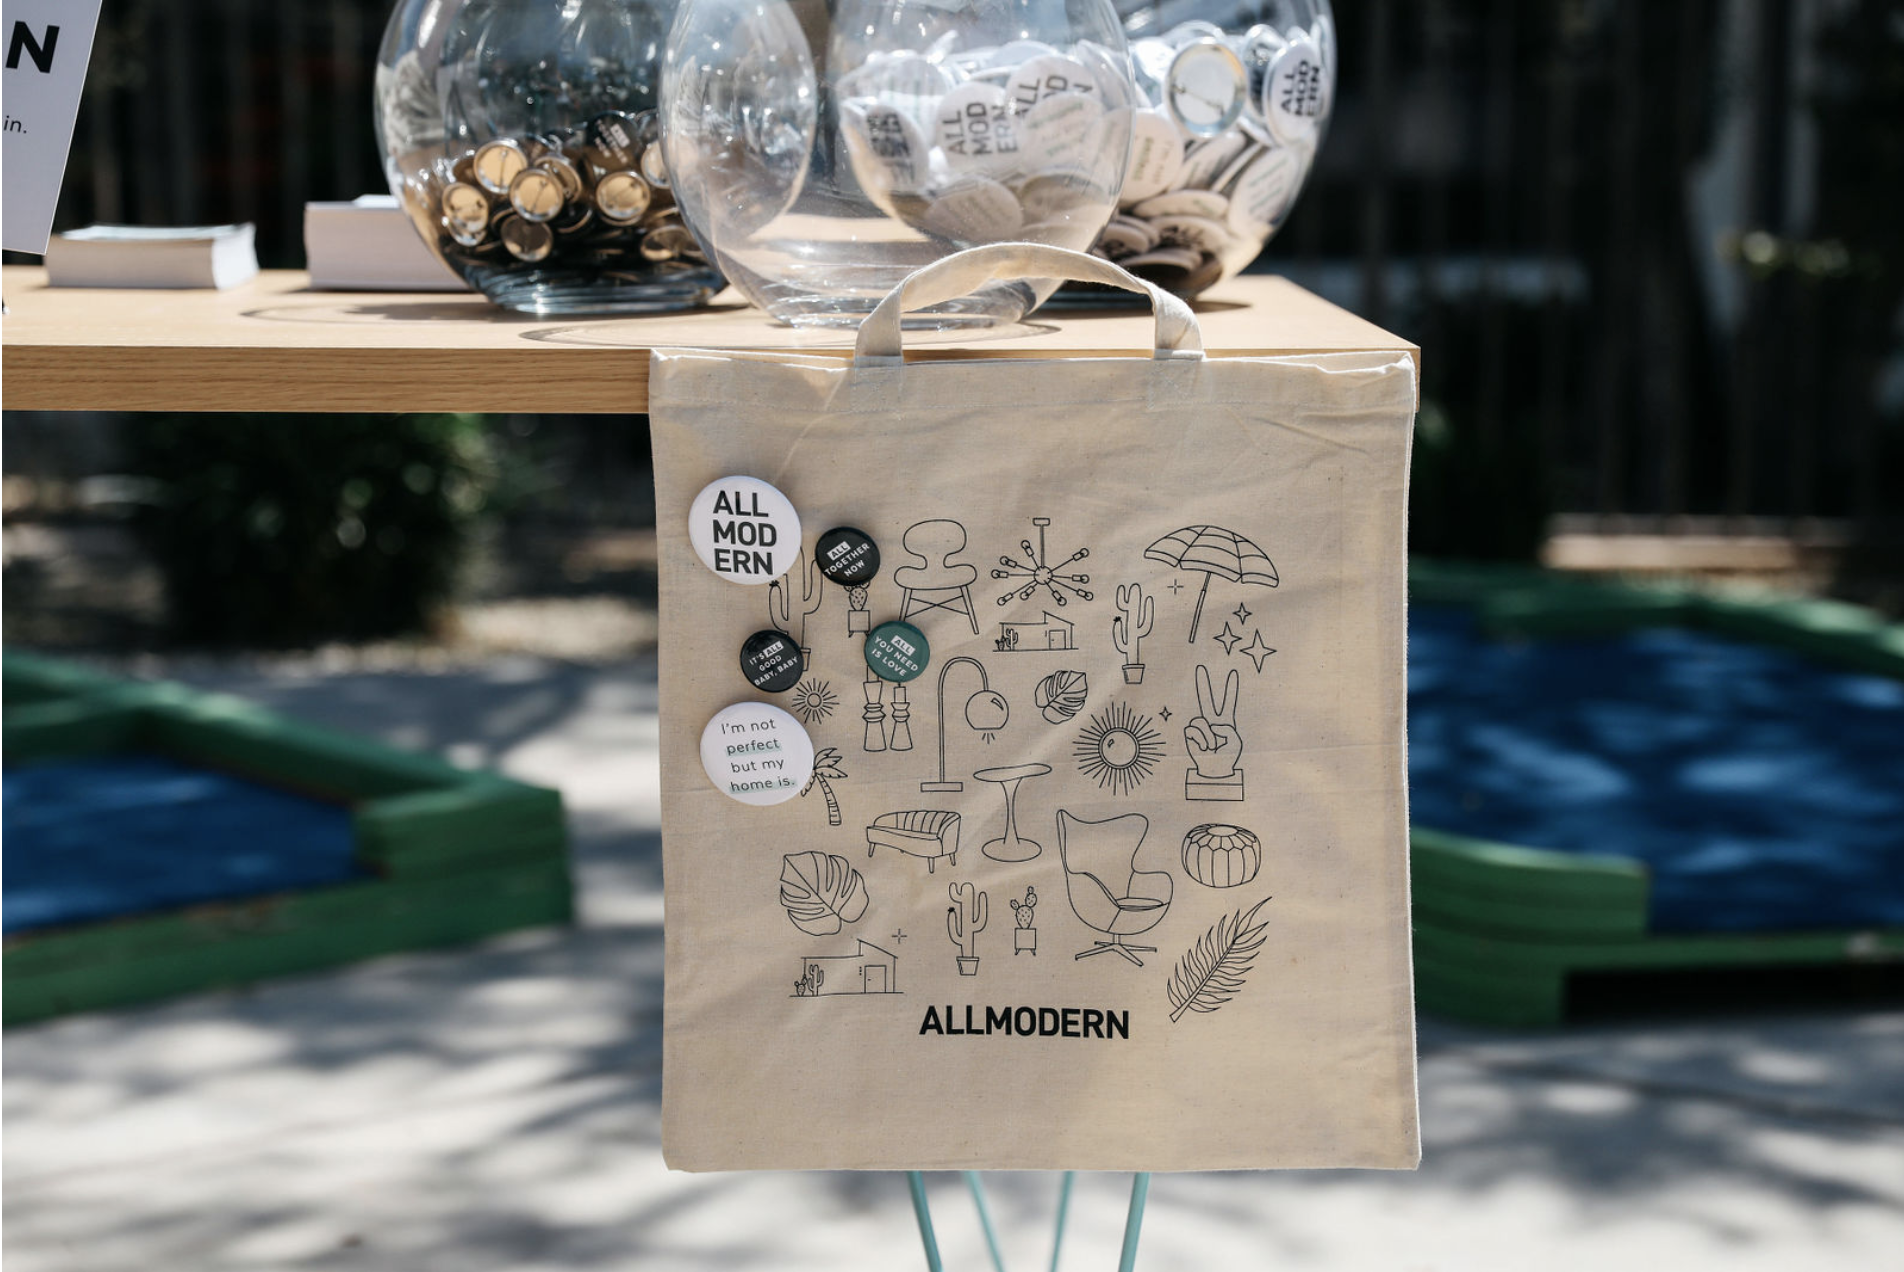 Welcome table with custom AllModern tote bag and pins. Image courtesy of Nicole Breanne.